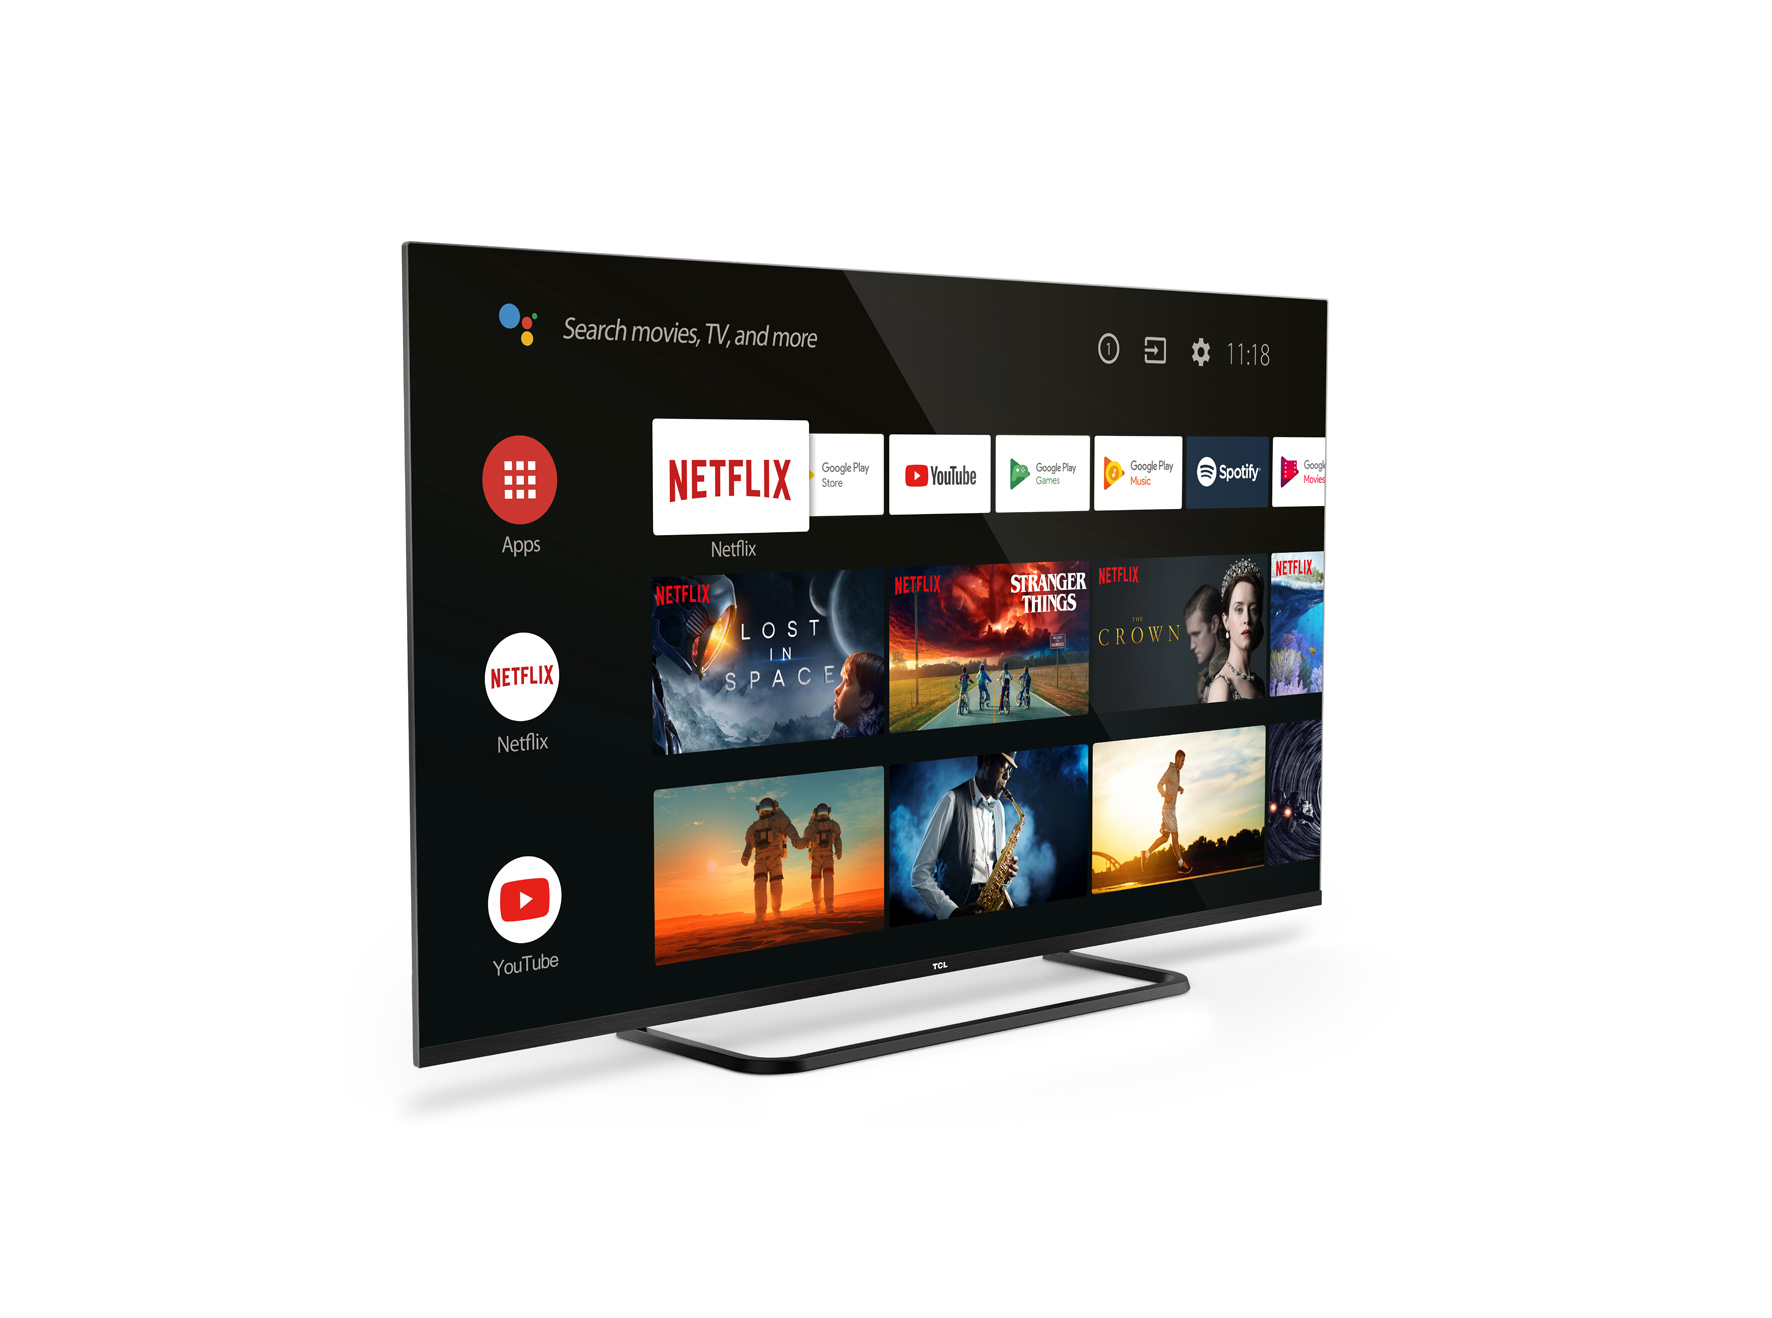 tcl-ep68-androidtv.jpg